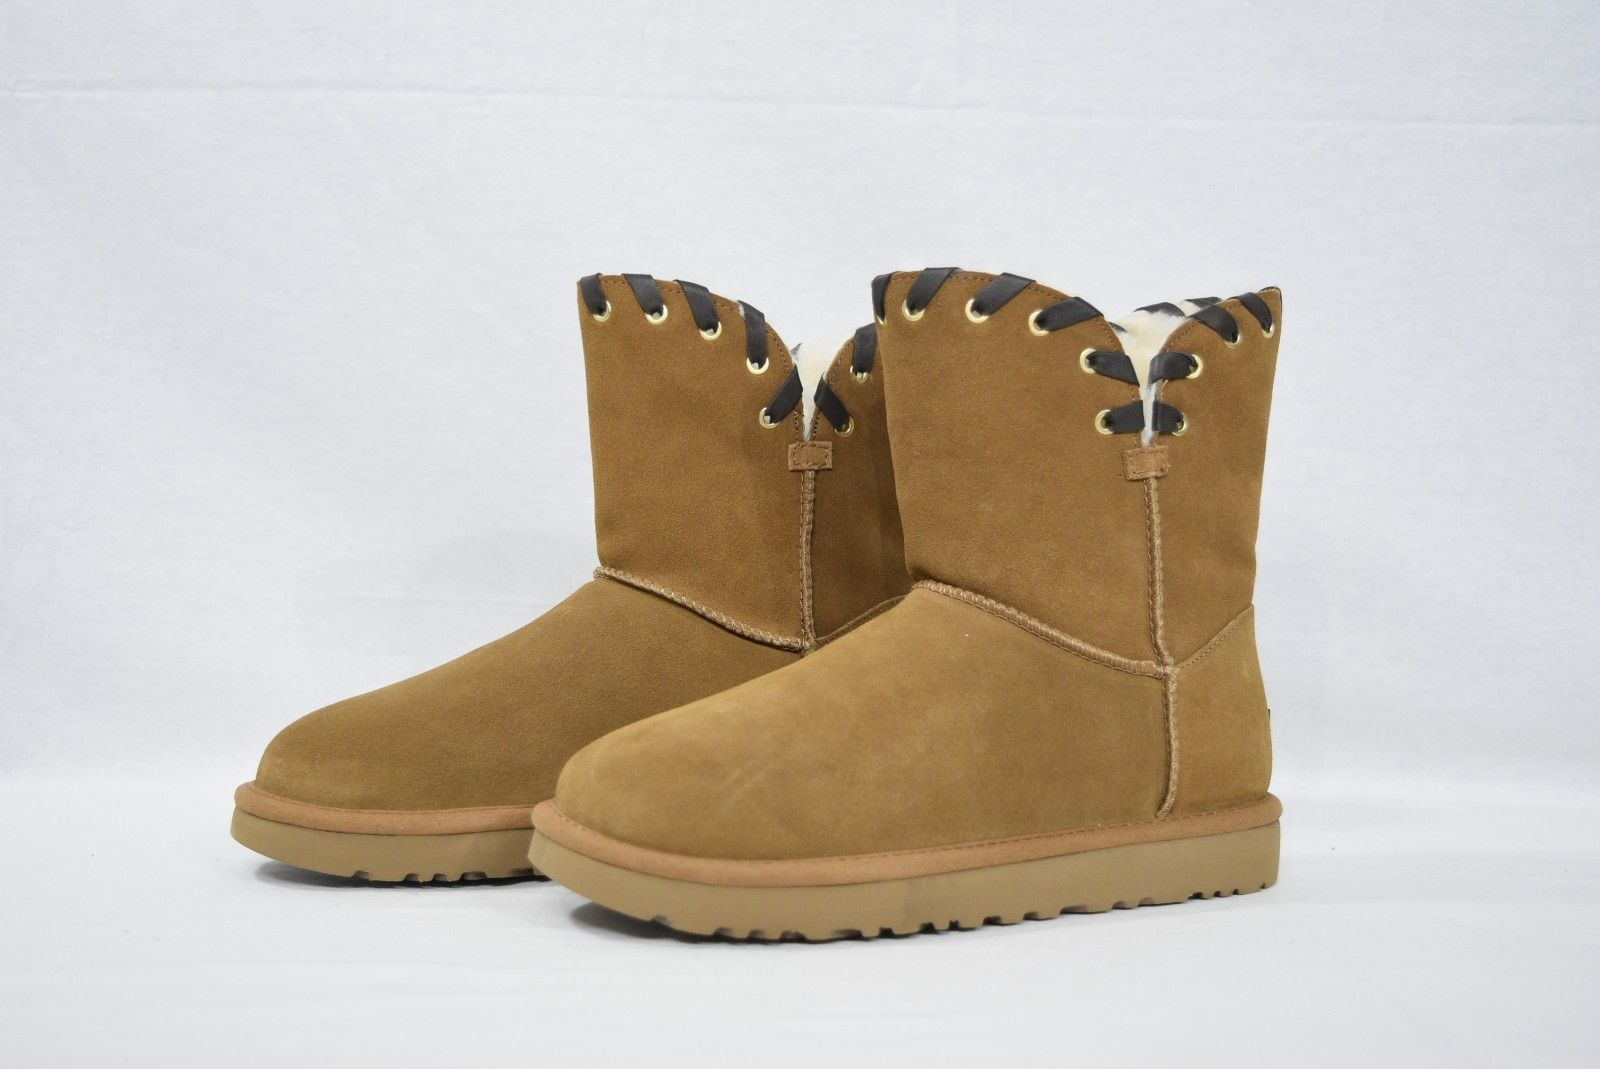 495af3803 S l1600. S l1600. Previous. NIB UGG Aidah Suede Whipstitch Detail Boots in US  Women's Size 8.